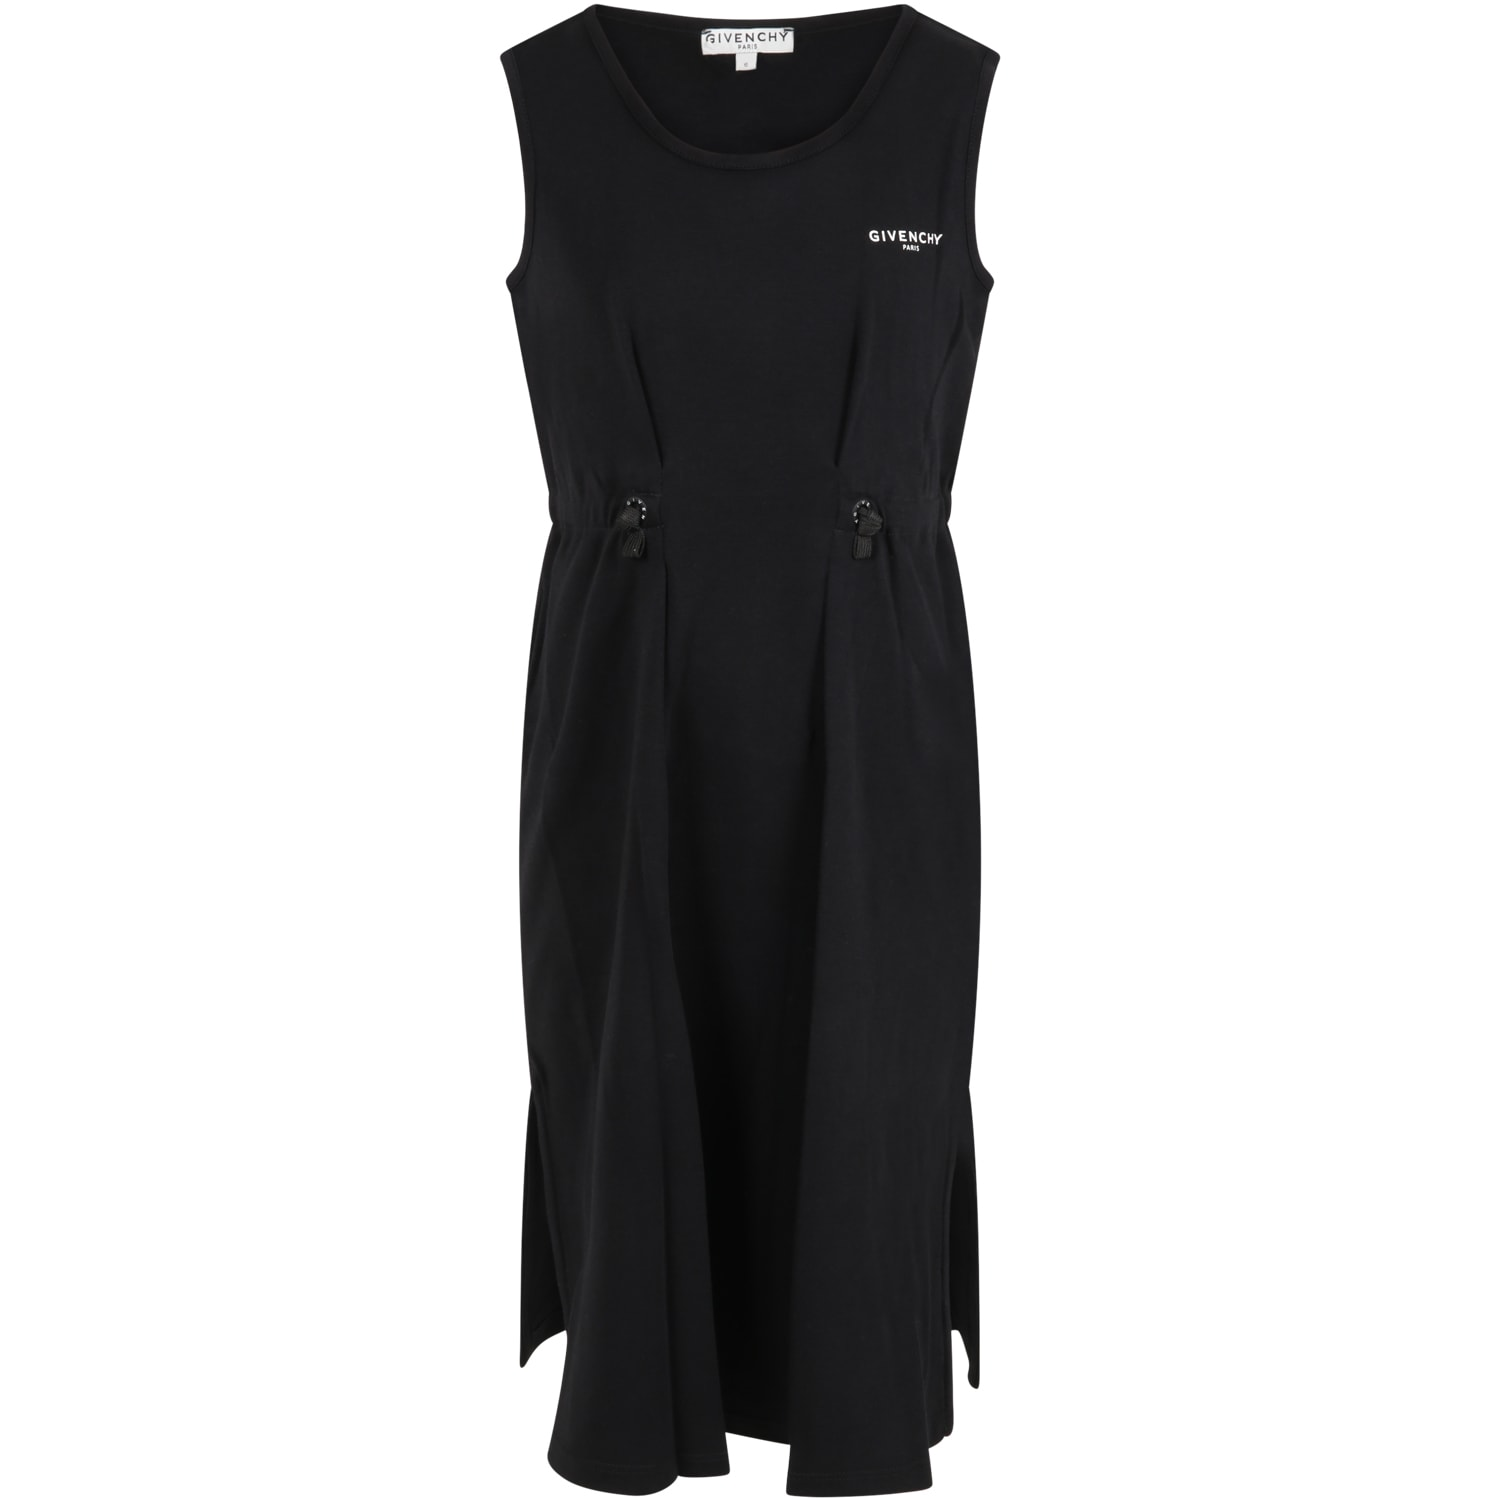 Givenchy Black Dress For Girl With Logo